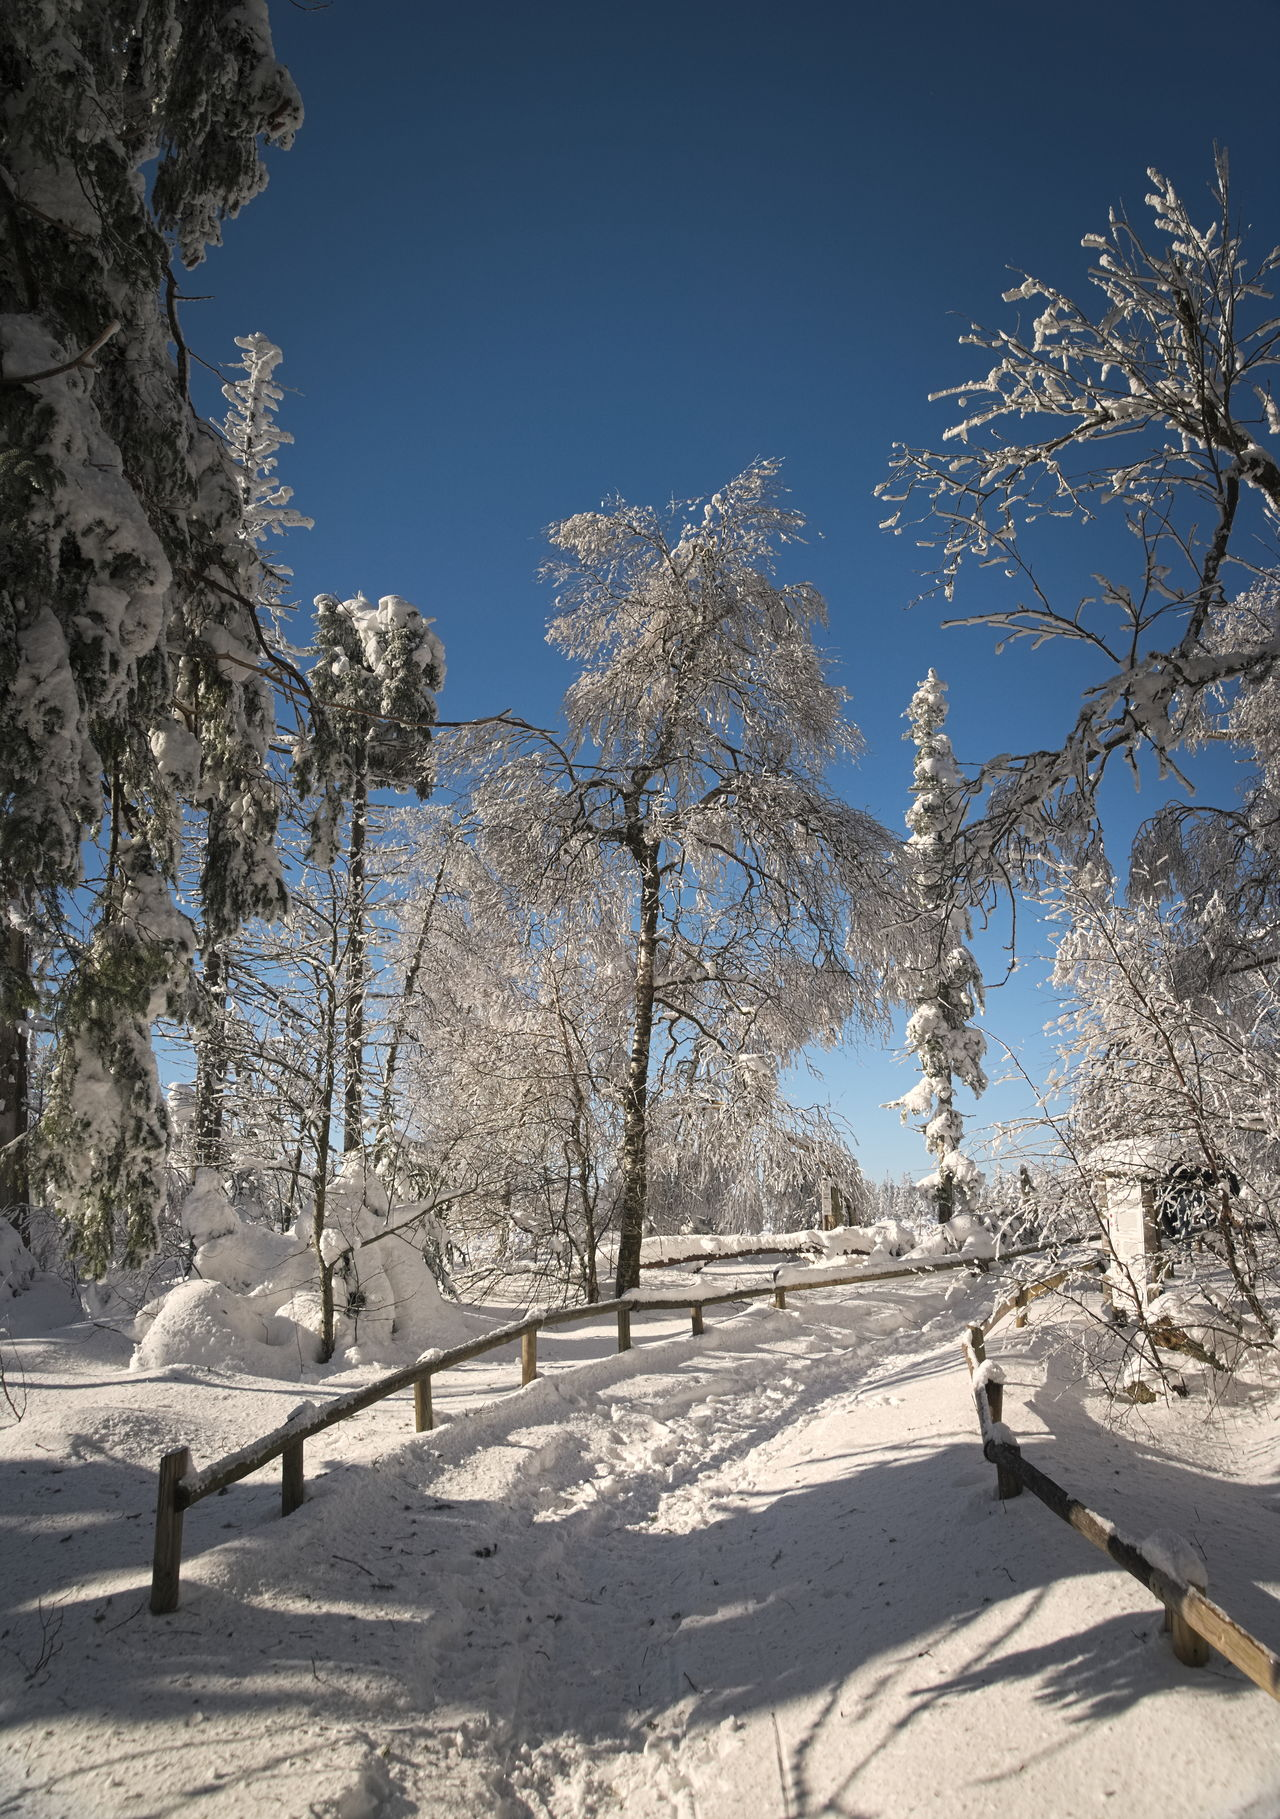 Path in the snow - Schwarzwald - Germany Beauty In Nature Blue Cold Temperature Day Forest Photography Into The Great White Open Landscape Nature Naturelovers No People Outdoors Path In The Snow Sky Snow Tree White And Blue White And Blue Sky Winter Winter Wonderland Wintertime